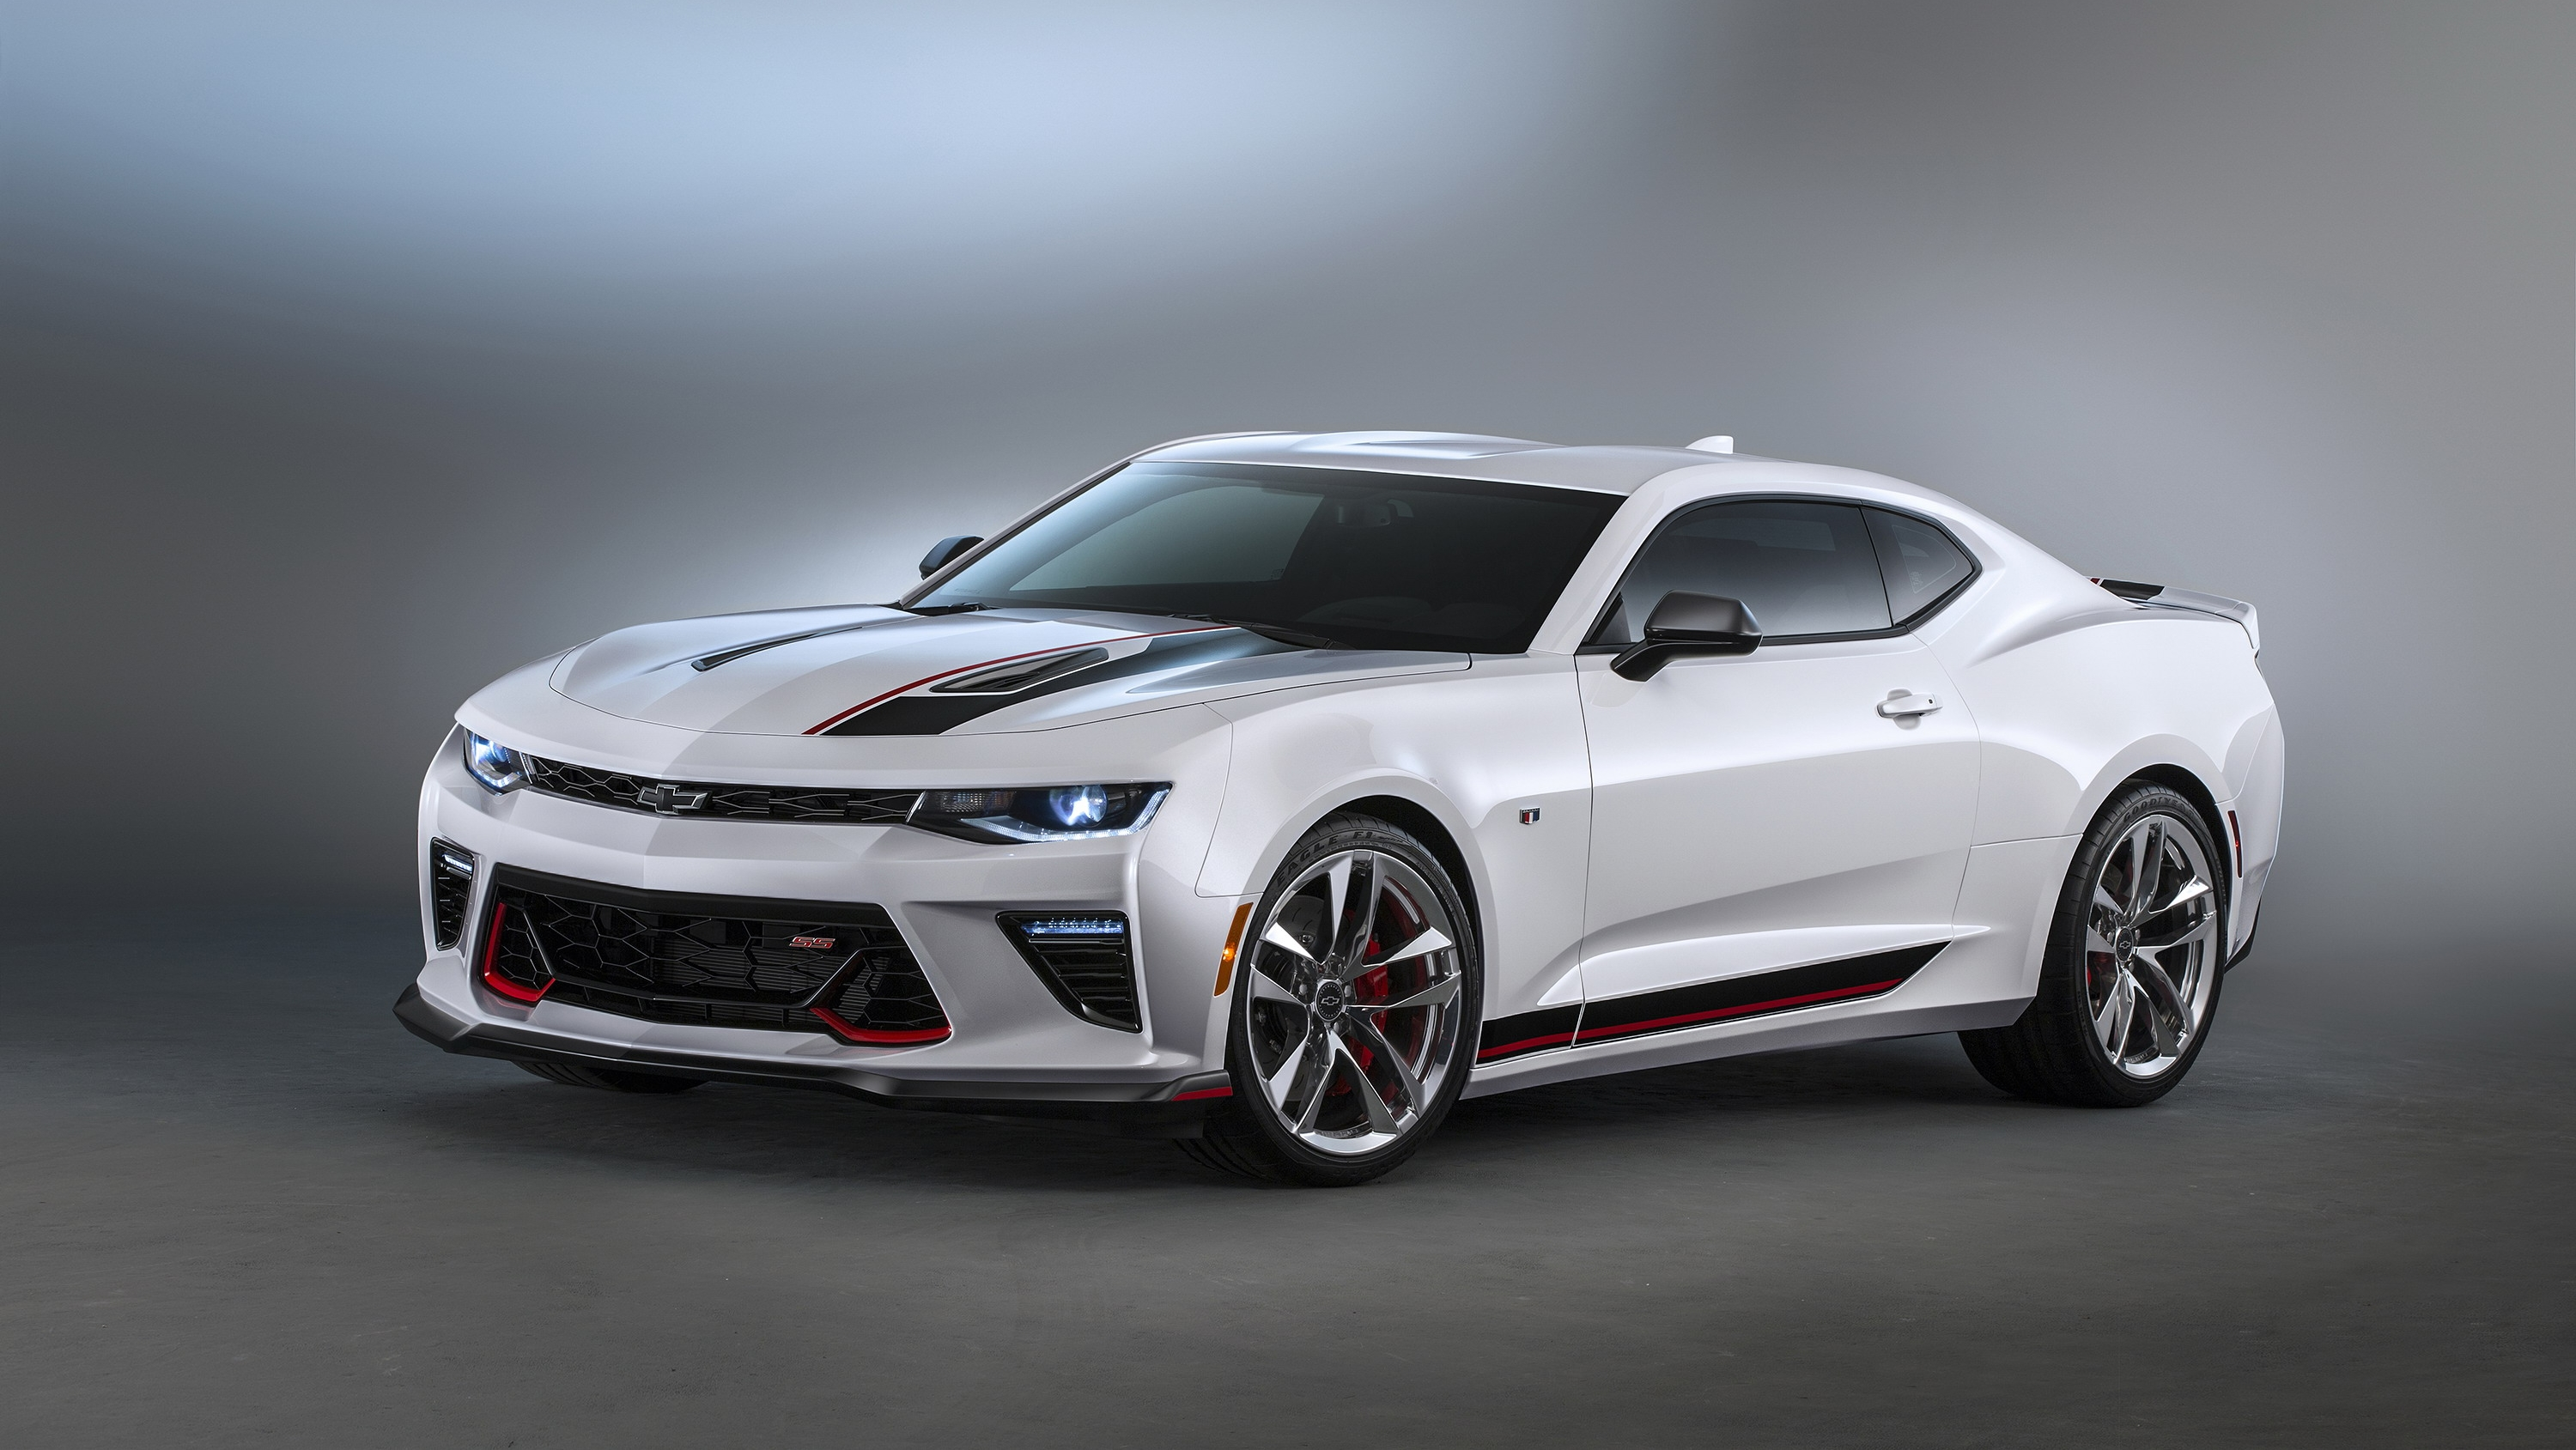 2016 Chevrolet Camaro Performance Concept Review - Top Speed